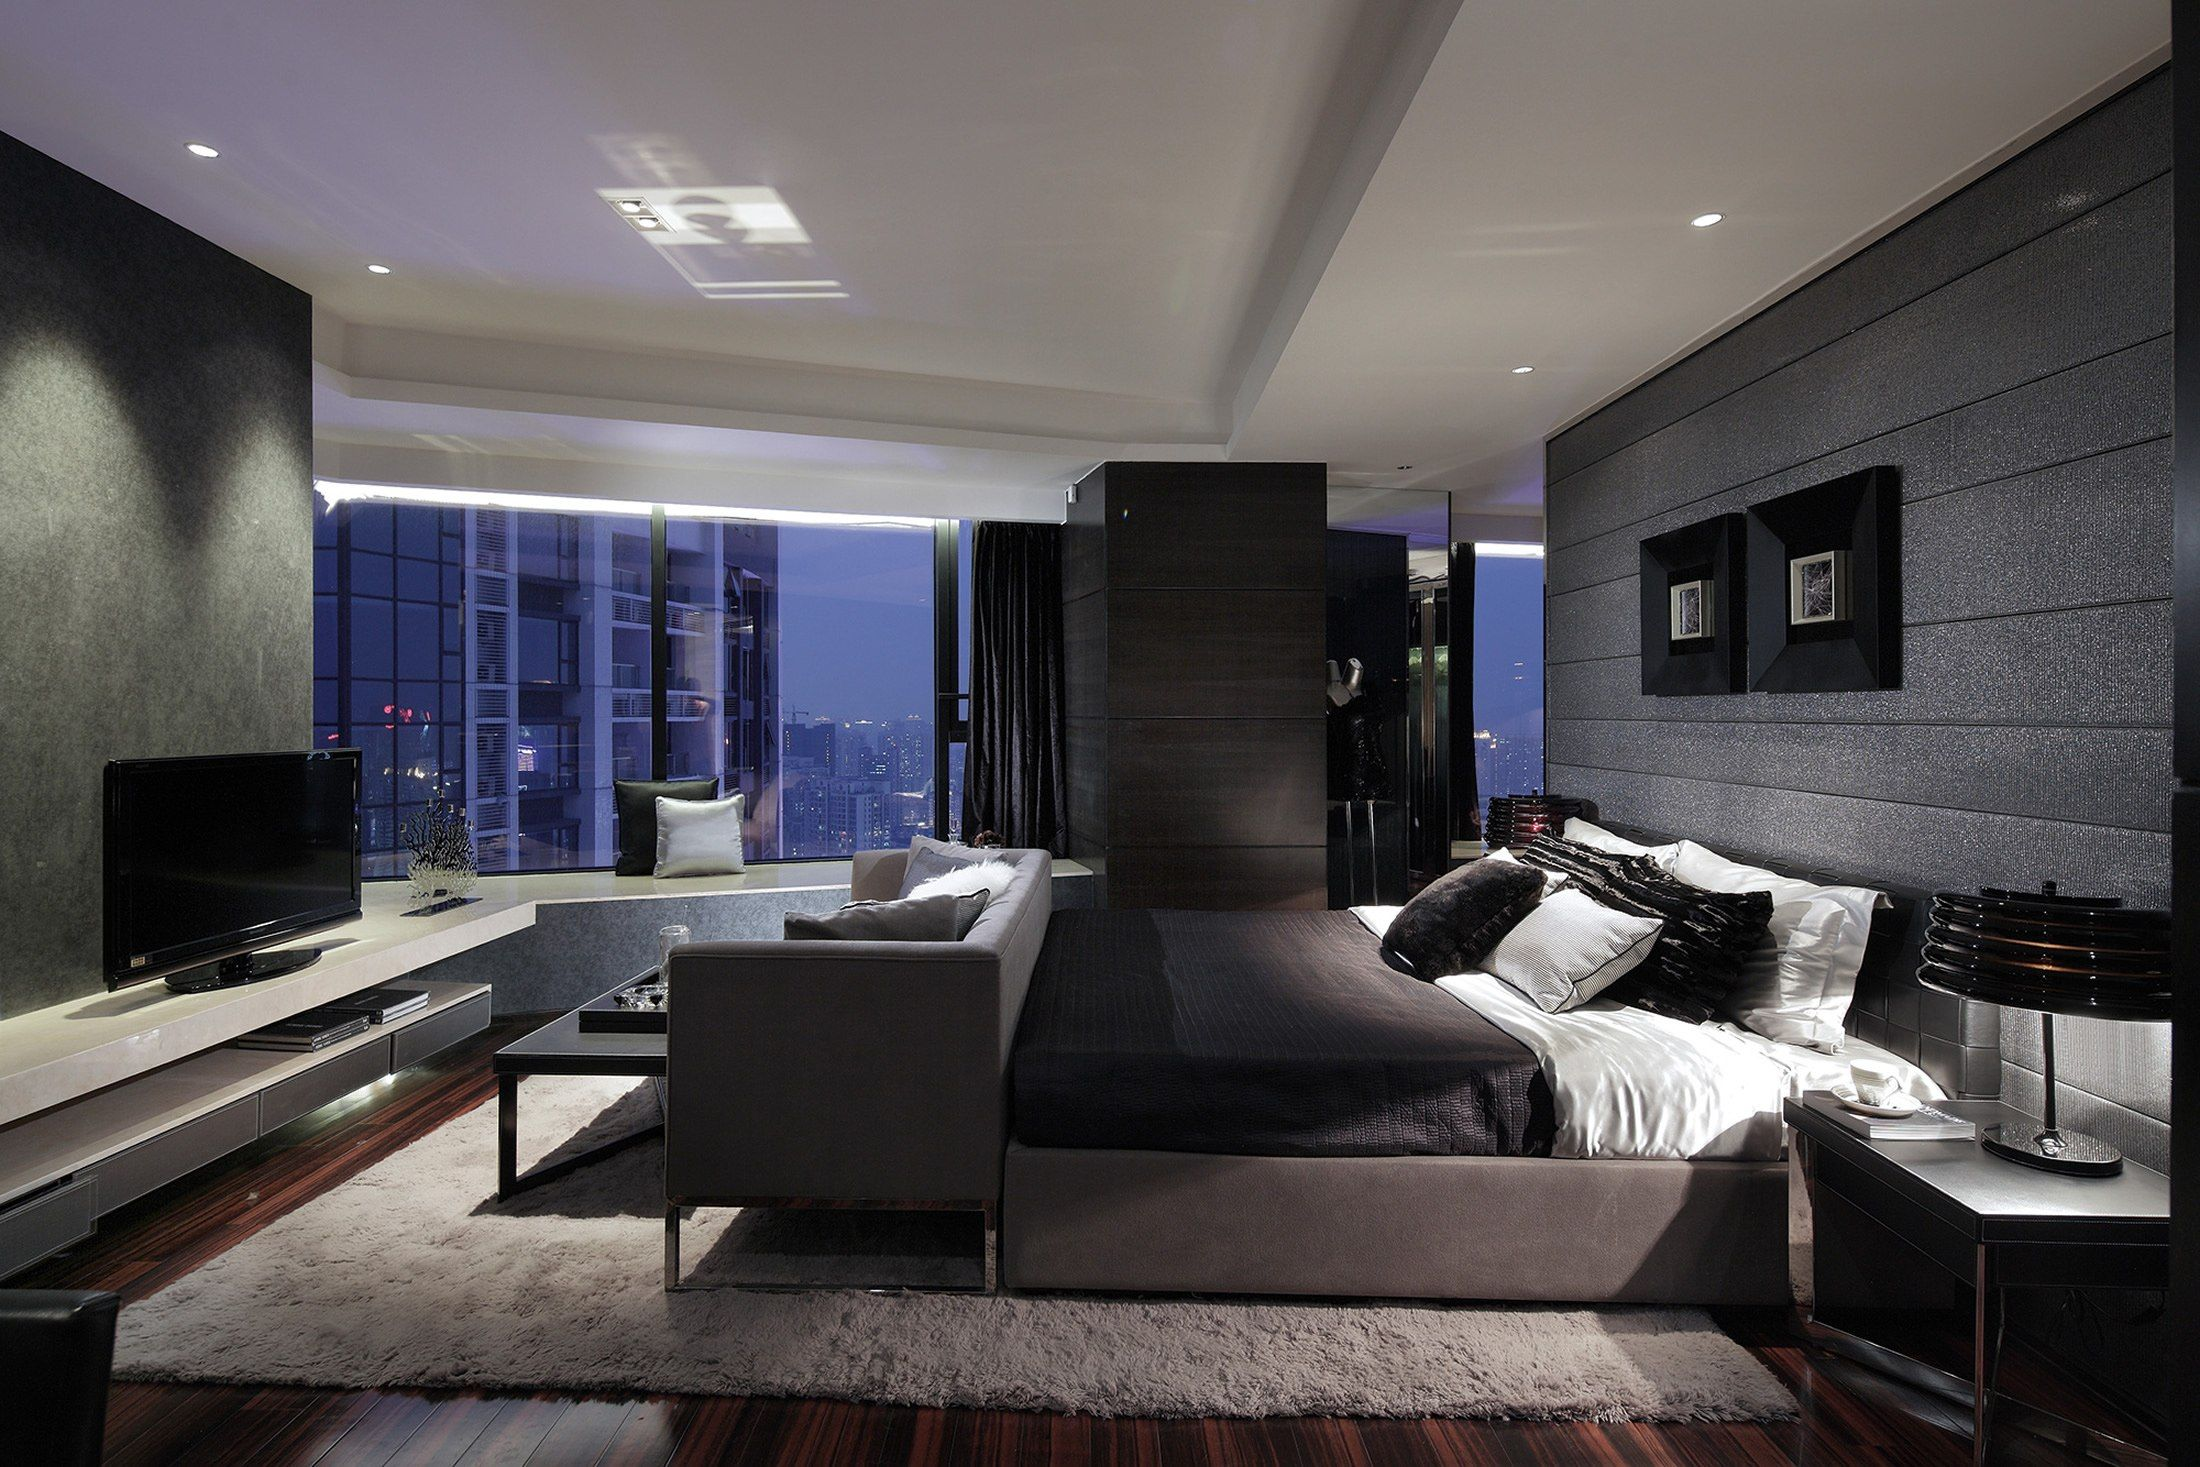 10 Futuristic Bedroom Design Ideas Luxury Contemporary Master Hotel Room Hotels Paris Designer Berlin Le Chat Noir